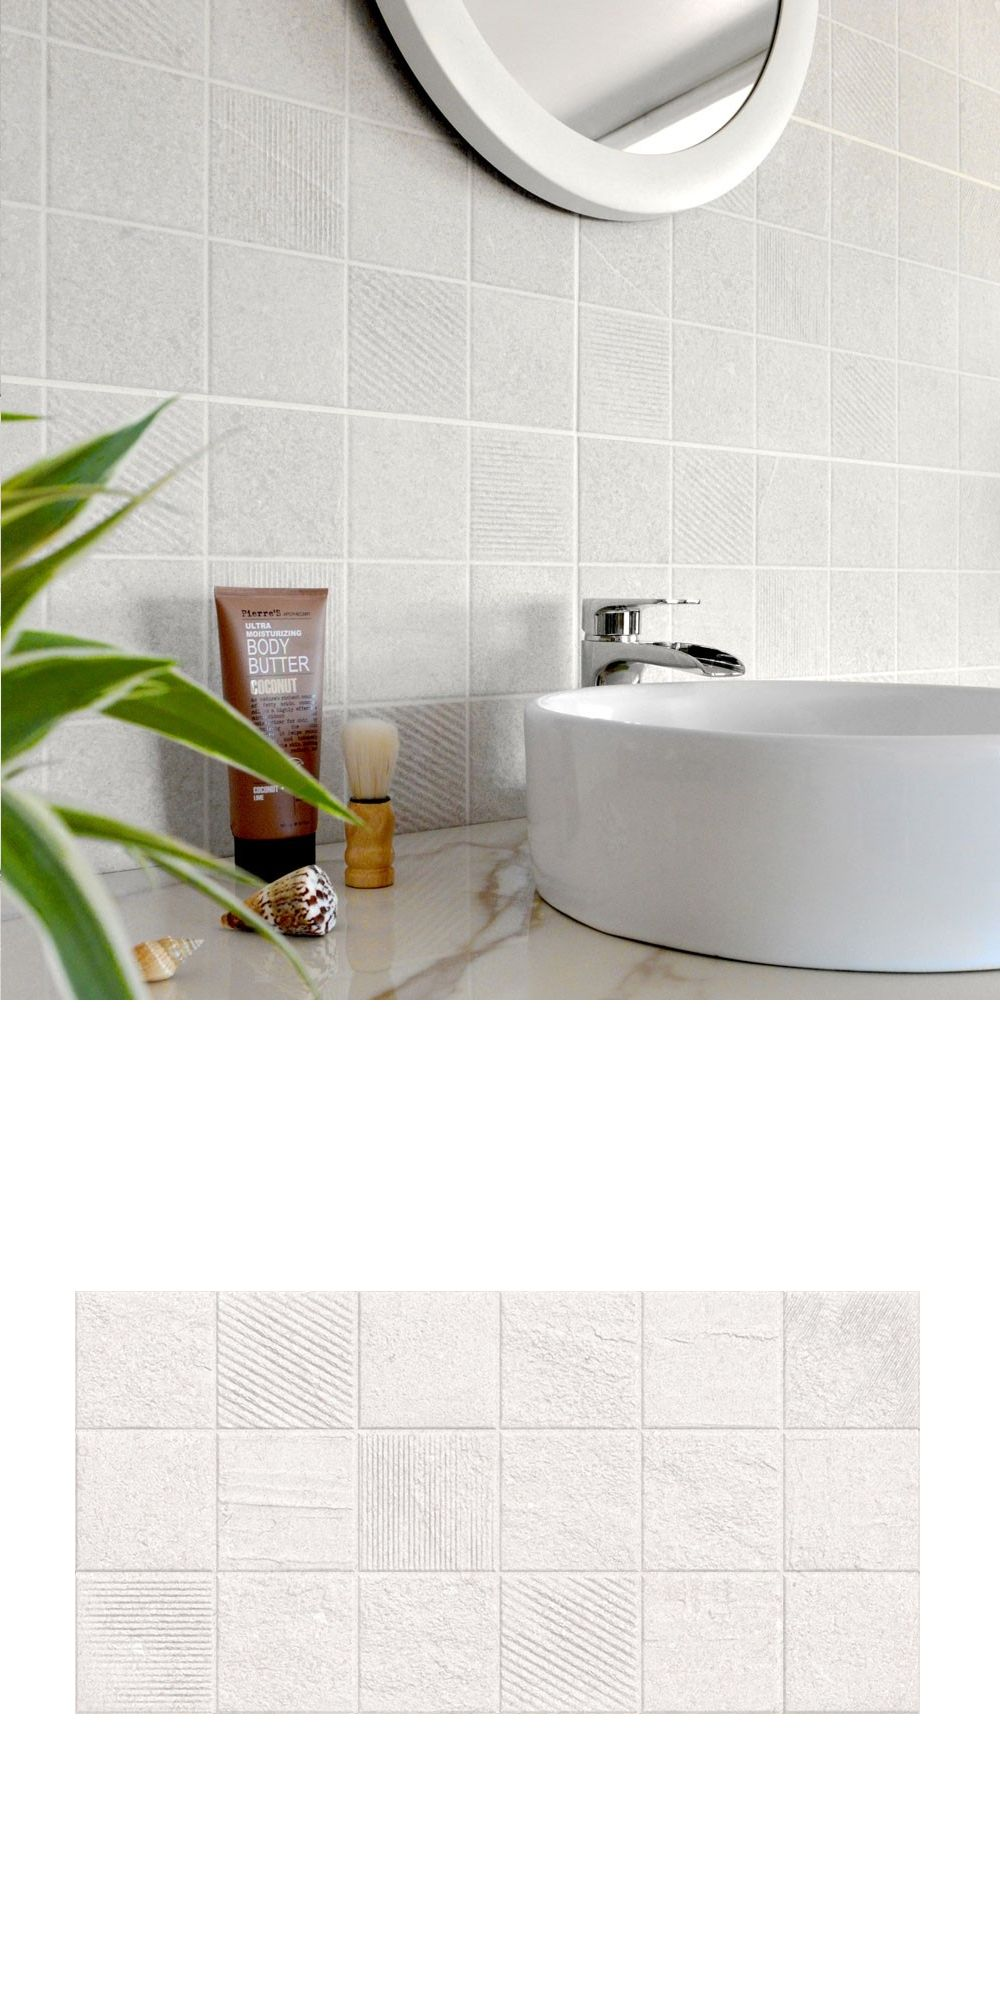 Create A Charming New Look On Your Wall Es With The Introduction Of These Earthstone Ivory Puzzle Tiles They Have Textured Stone Effect Design In